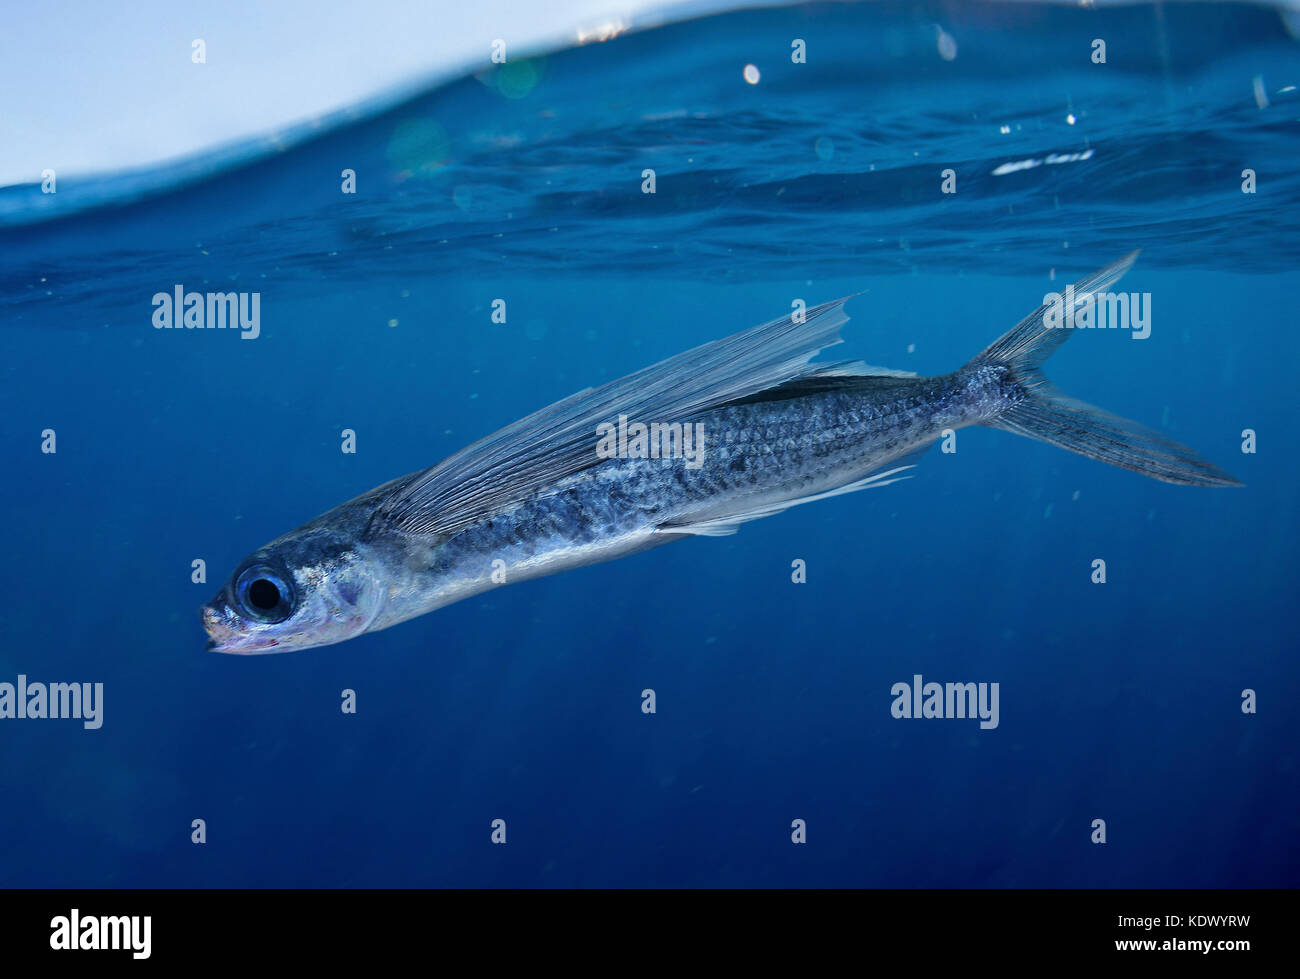 Flying fish species stock photos flying fish species for Flying fish images